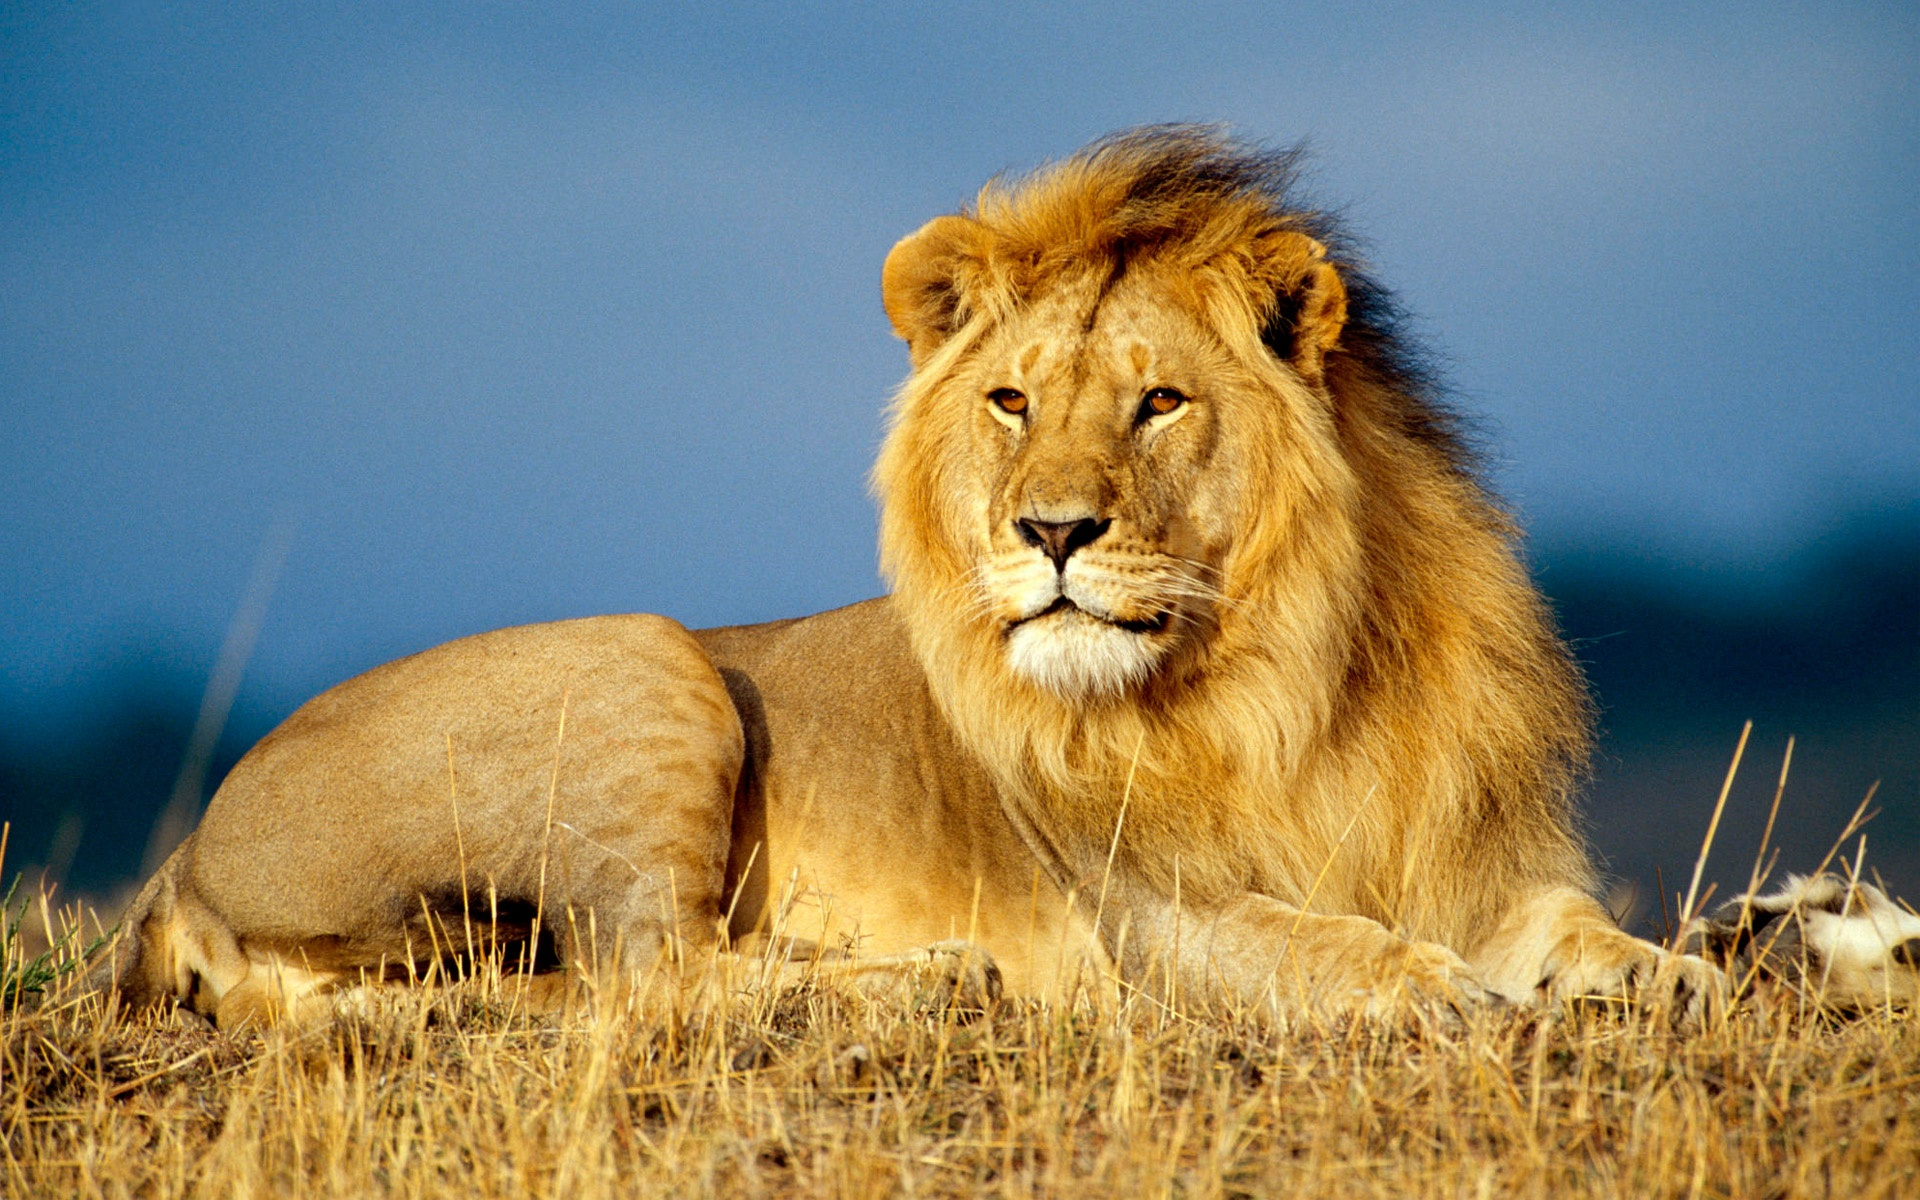 Lion wallpaper wallpapers for free download about (3,030) wallpapers